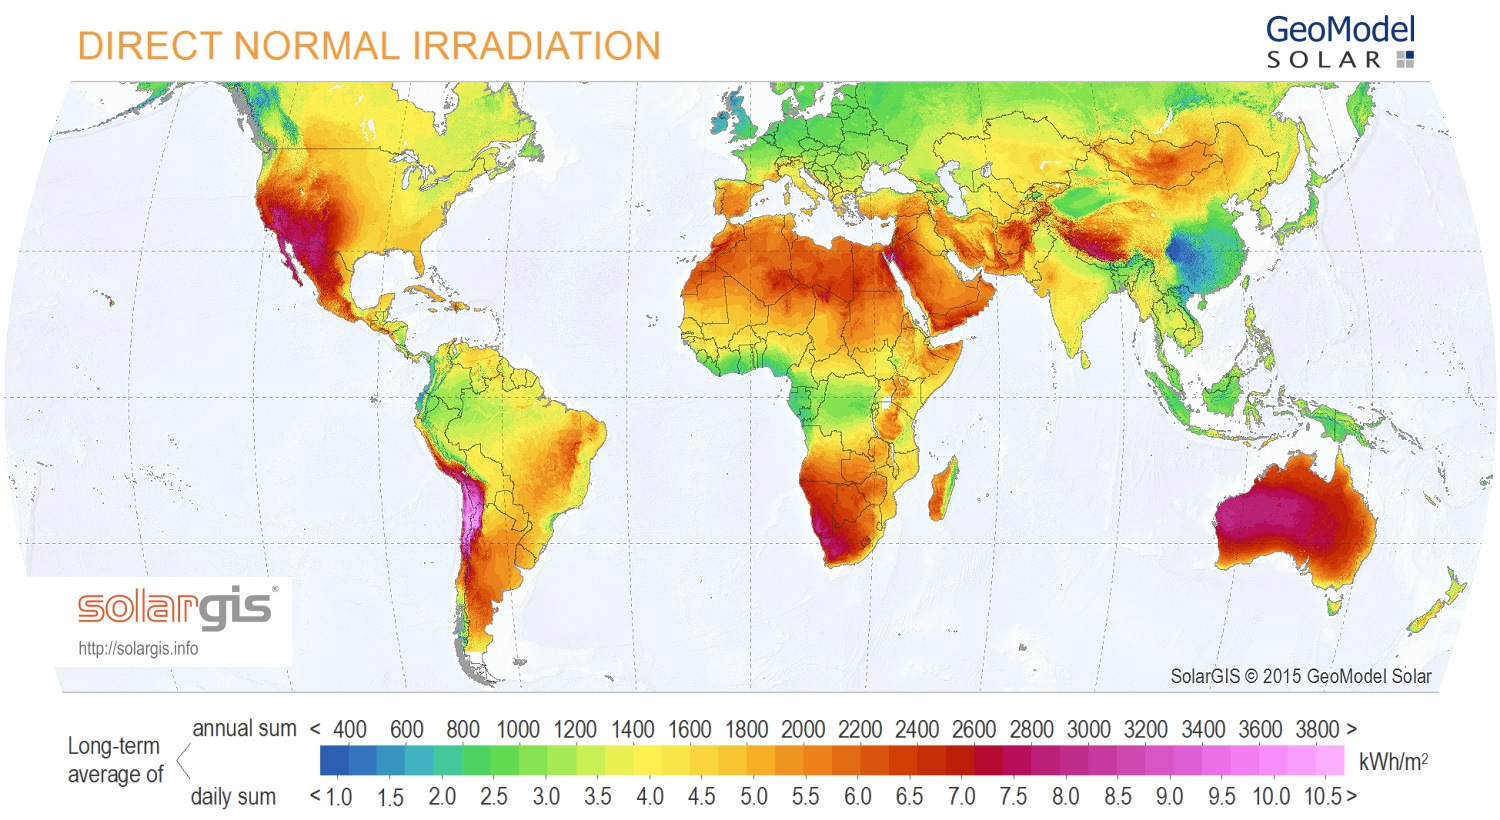 A map of the direct normal irradiation (DNI) received across the world. Most of Australia receives a long-term average annual sum of 1000 kWh per metre squared, a high amount compared to the world. Other areas of high DNI include southwest Northern America, southern Africa, and western South America.